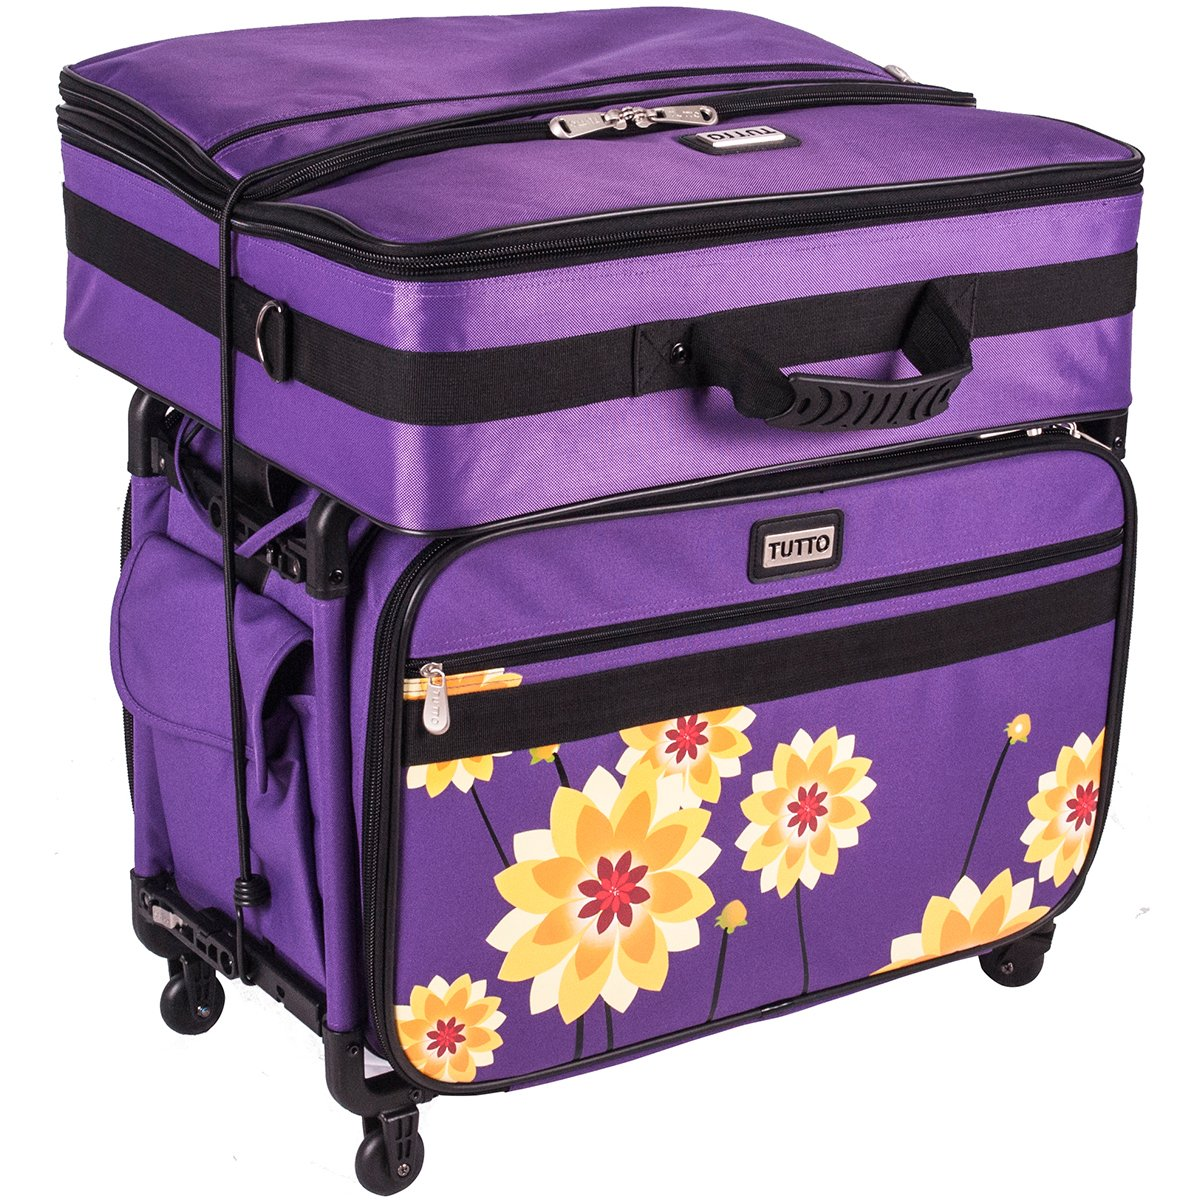 Tutto Purple Dahlia Large Machine case by Tutto